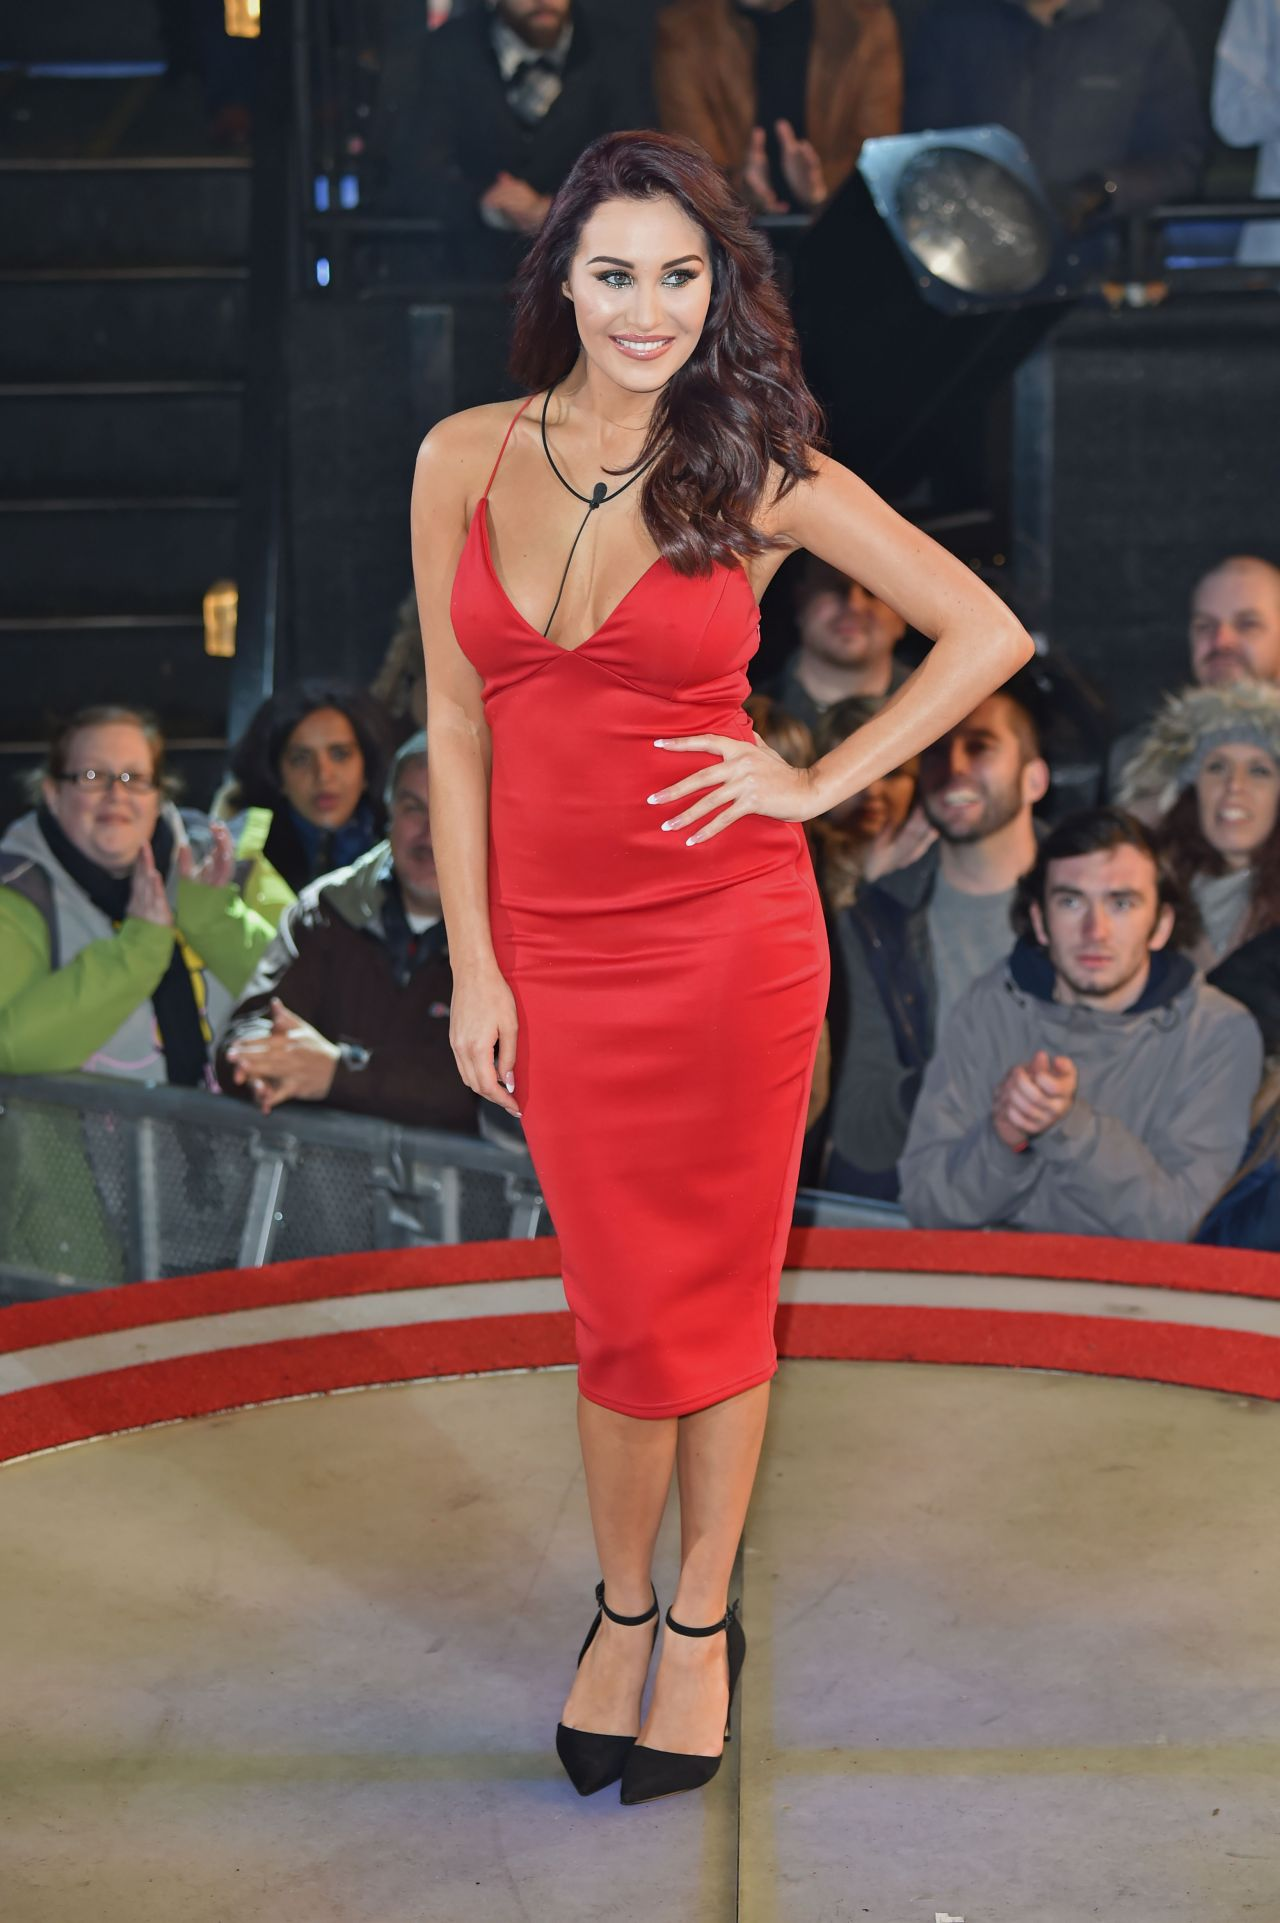 Celebrity big brother 2014: March 2005 | Celebrity big ...